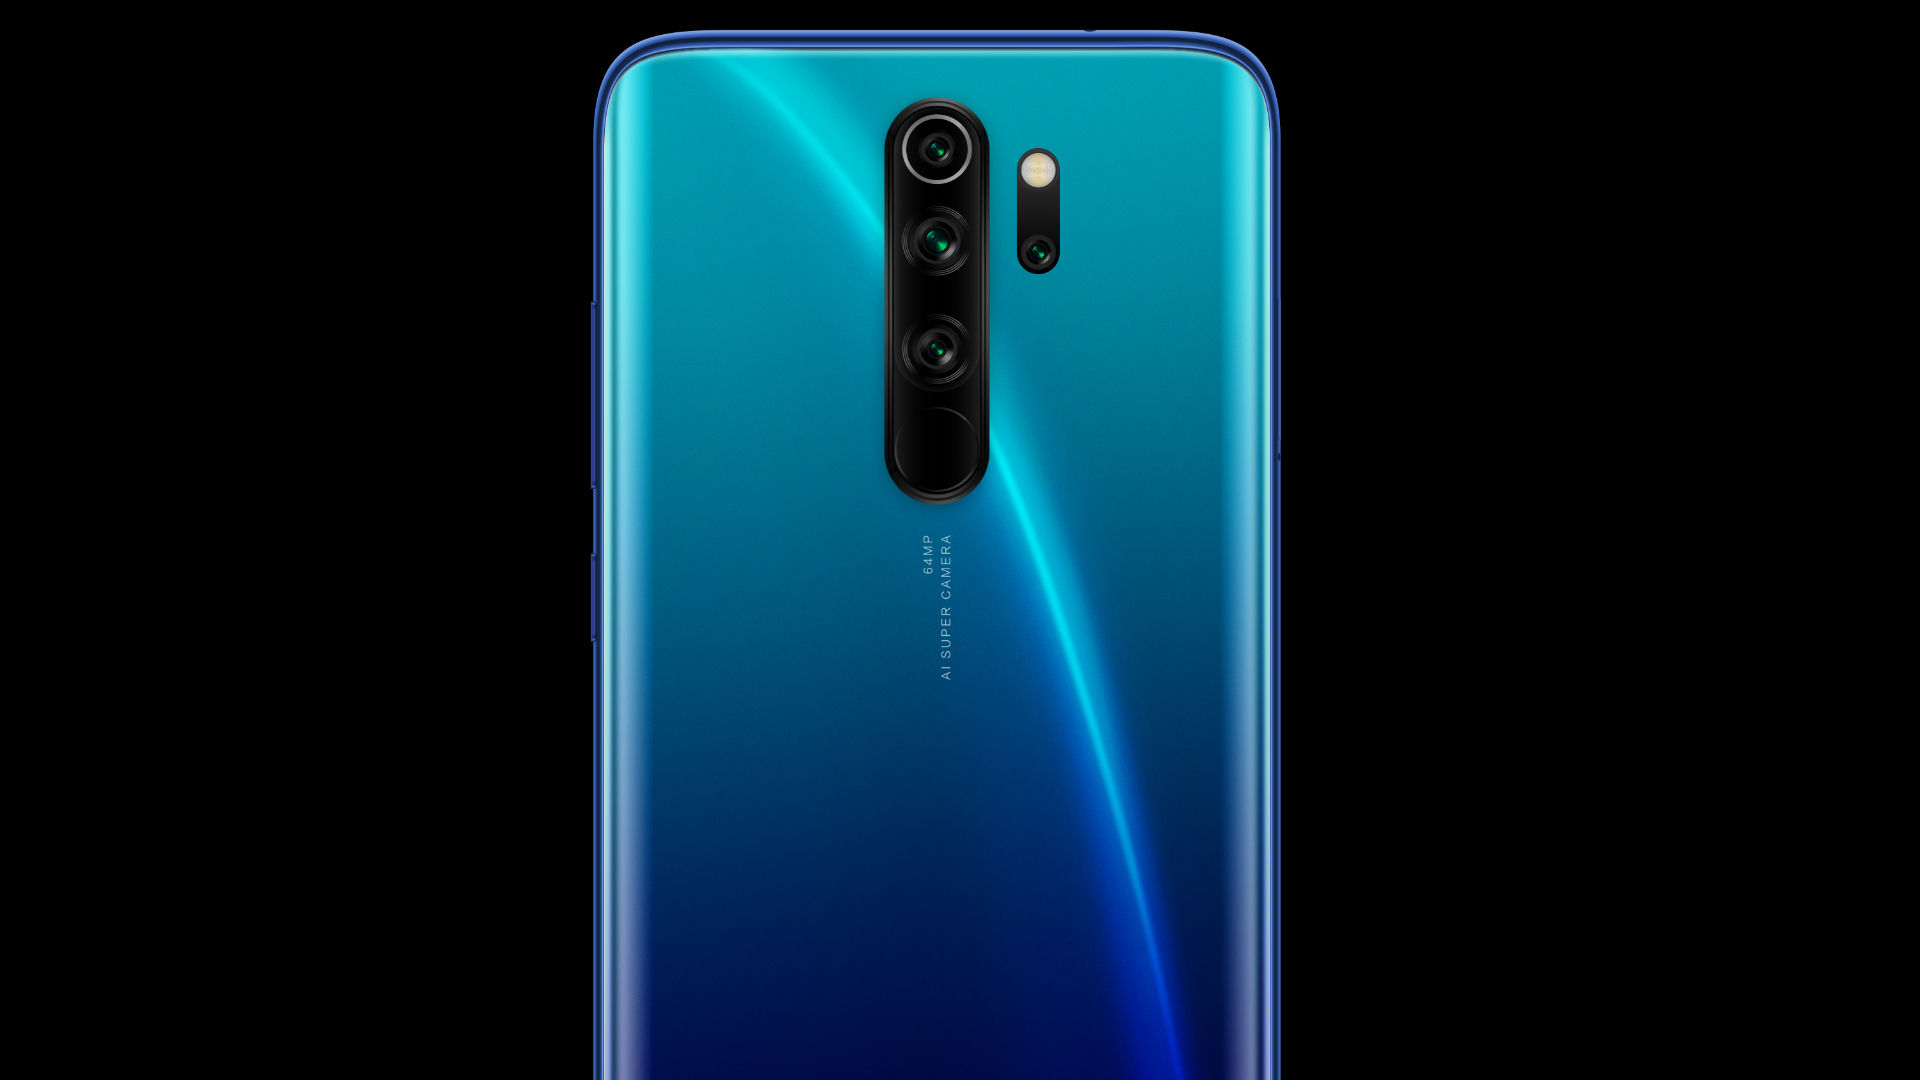 Xiaomi Redmi Note 8 Pro Gets New Electric Blue Variant In India Price Starts At Rs 14 999